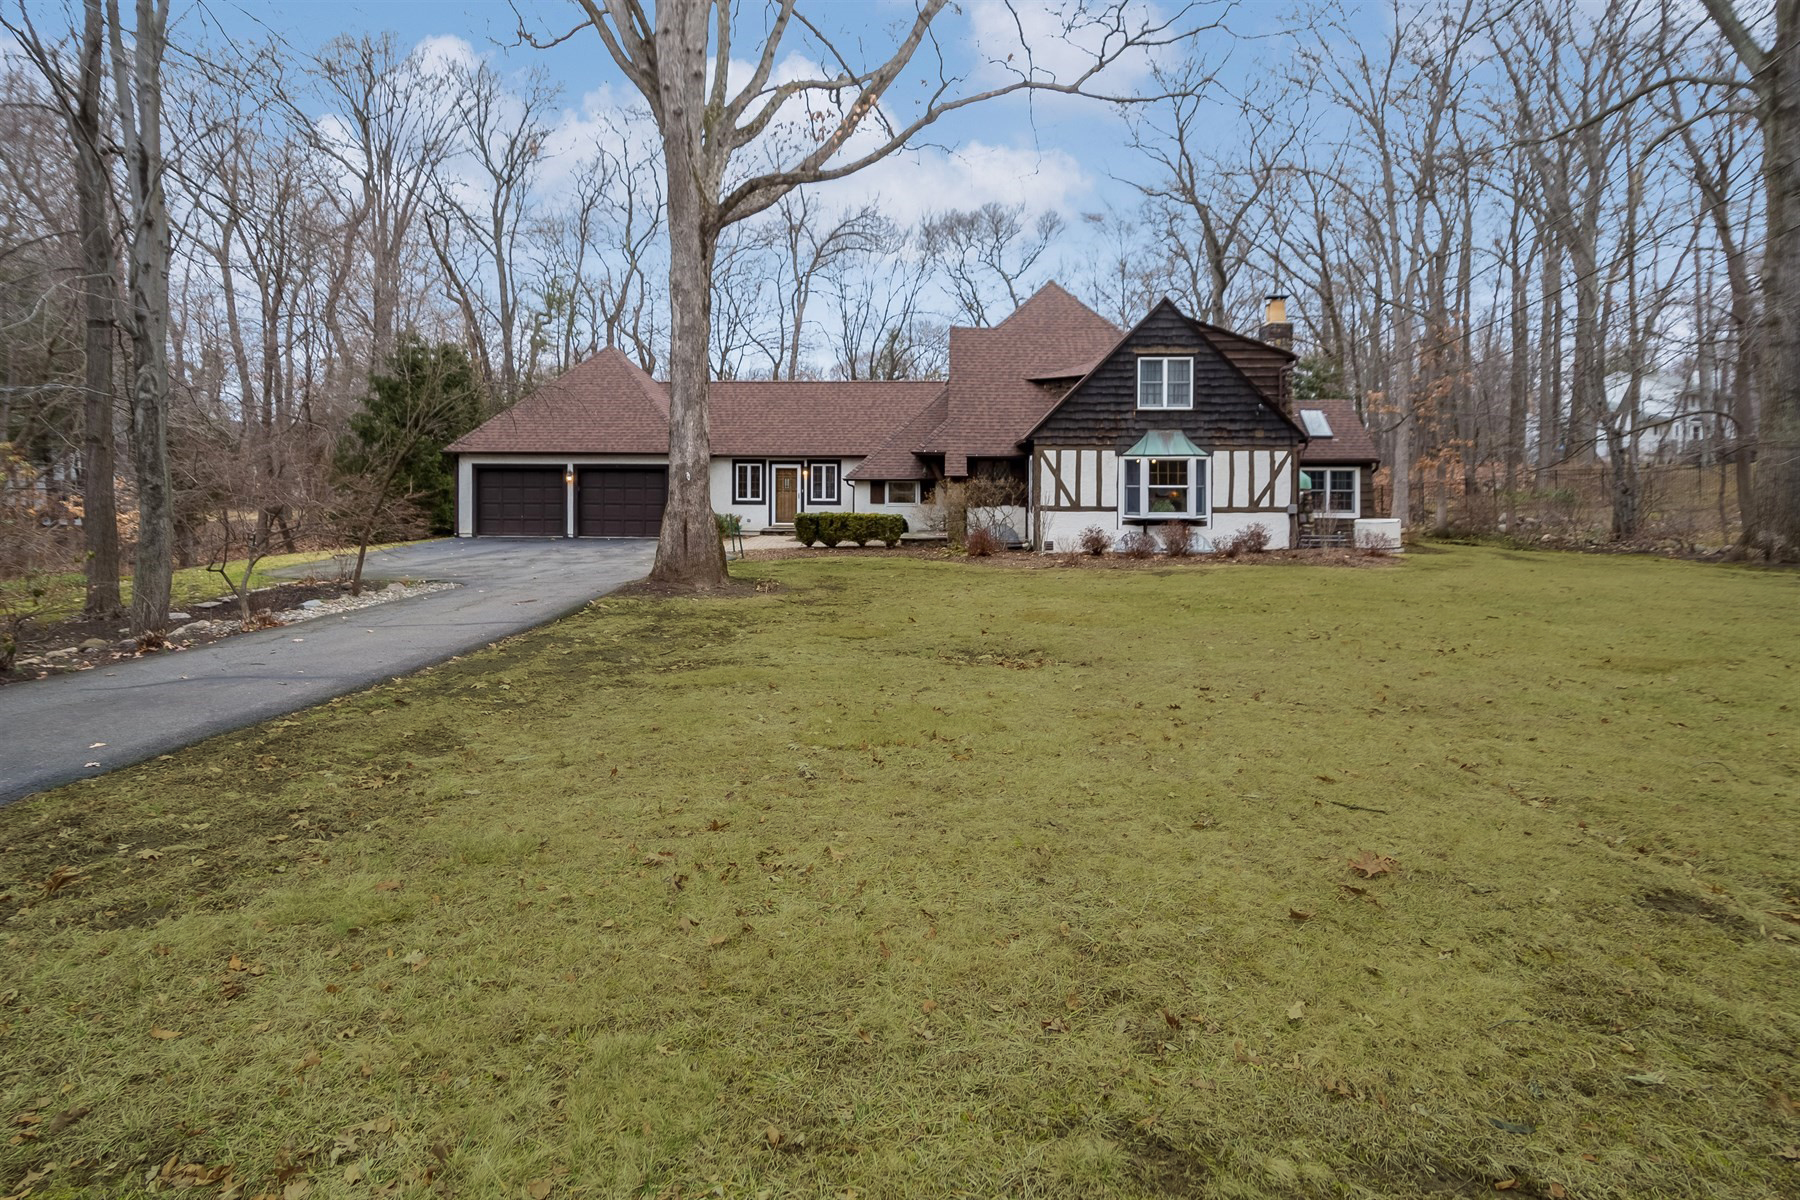 Single Family Home for Sale at Exquisite Custom Tudor 24 Old Wood Road Morris Plains, 07950 United States